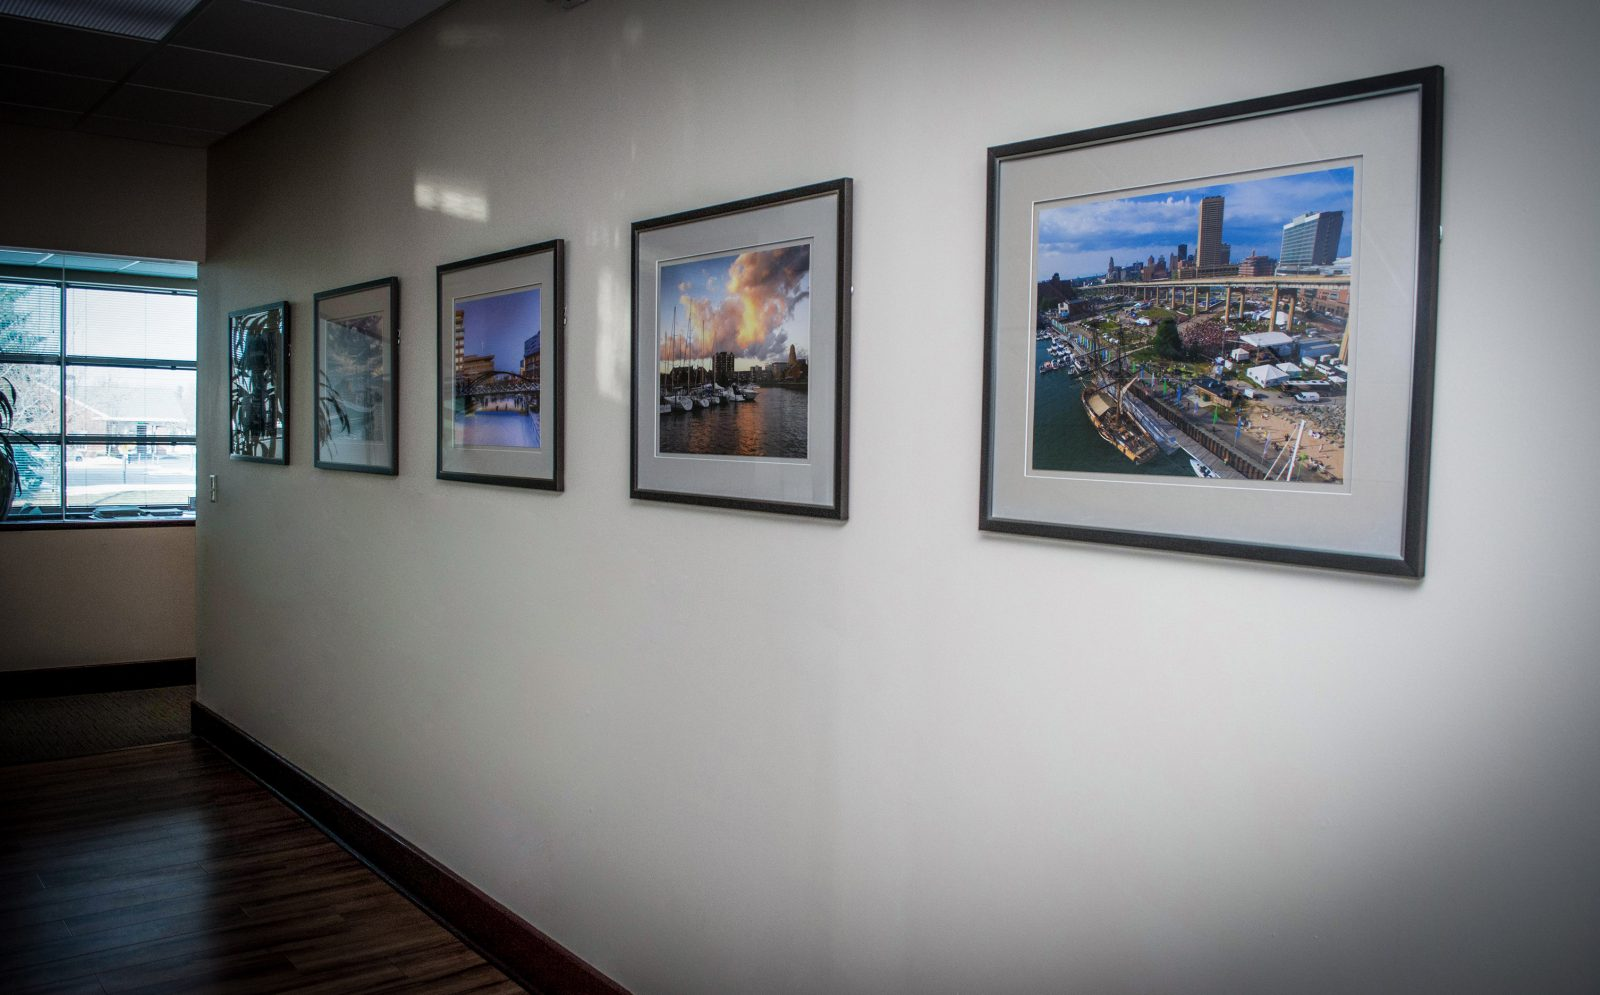 framed photos of cityscapes on the wall of an office